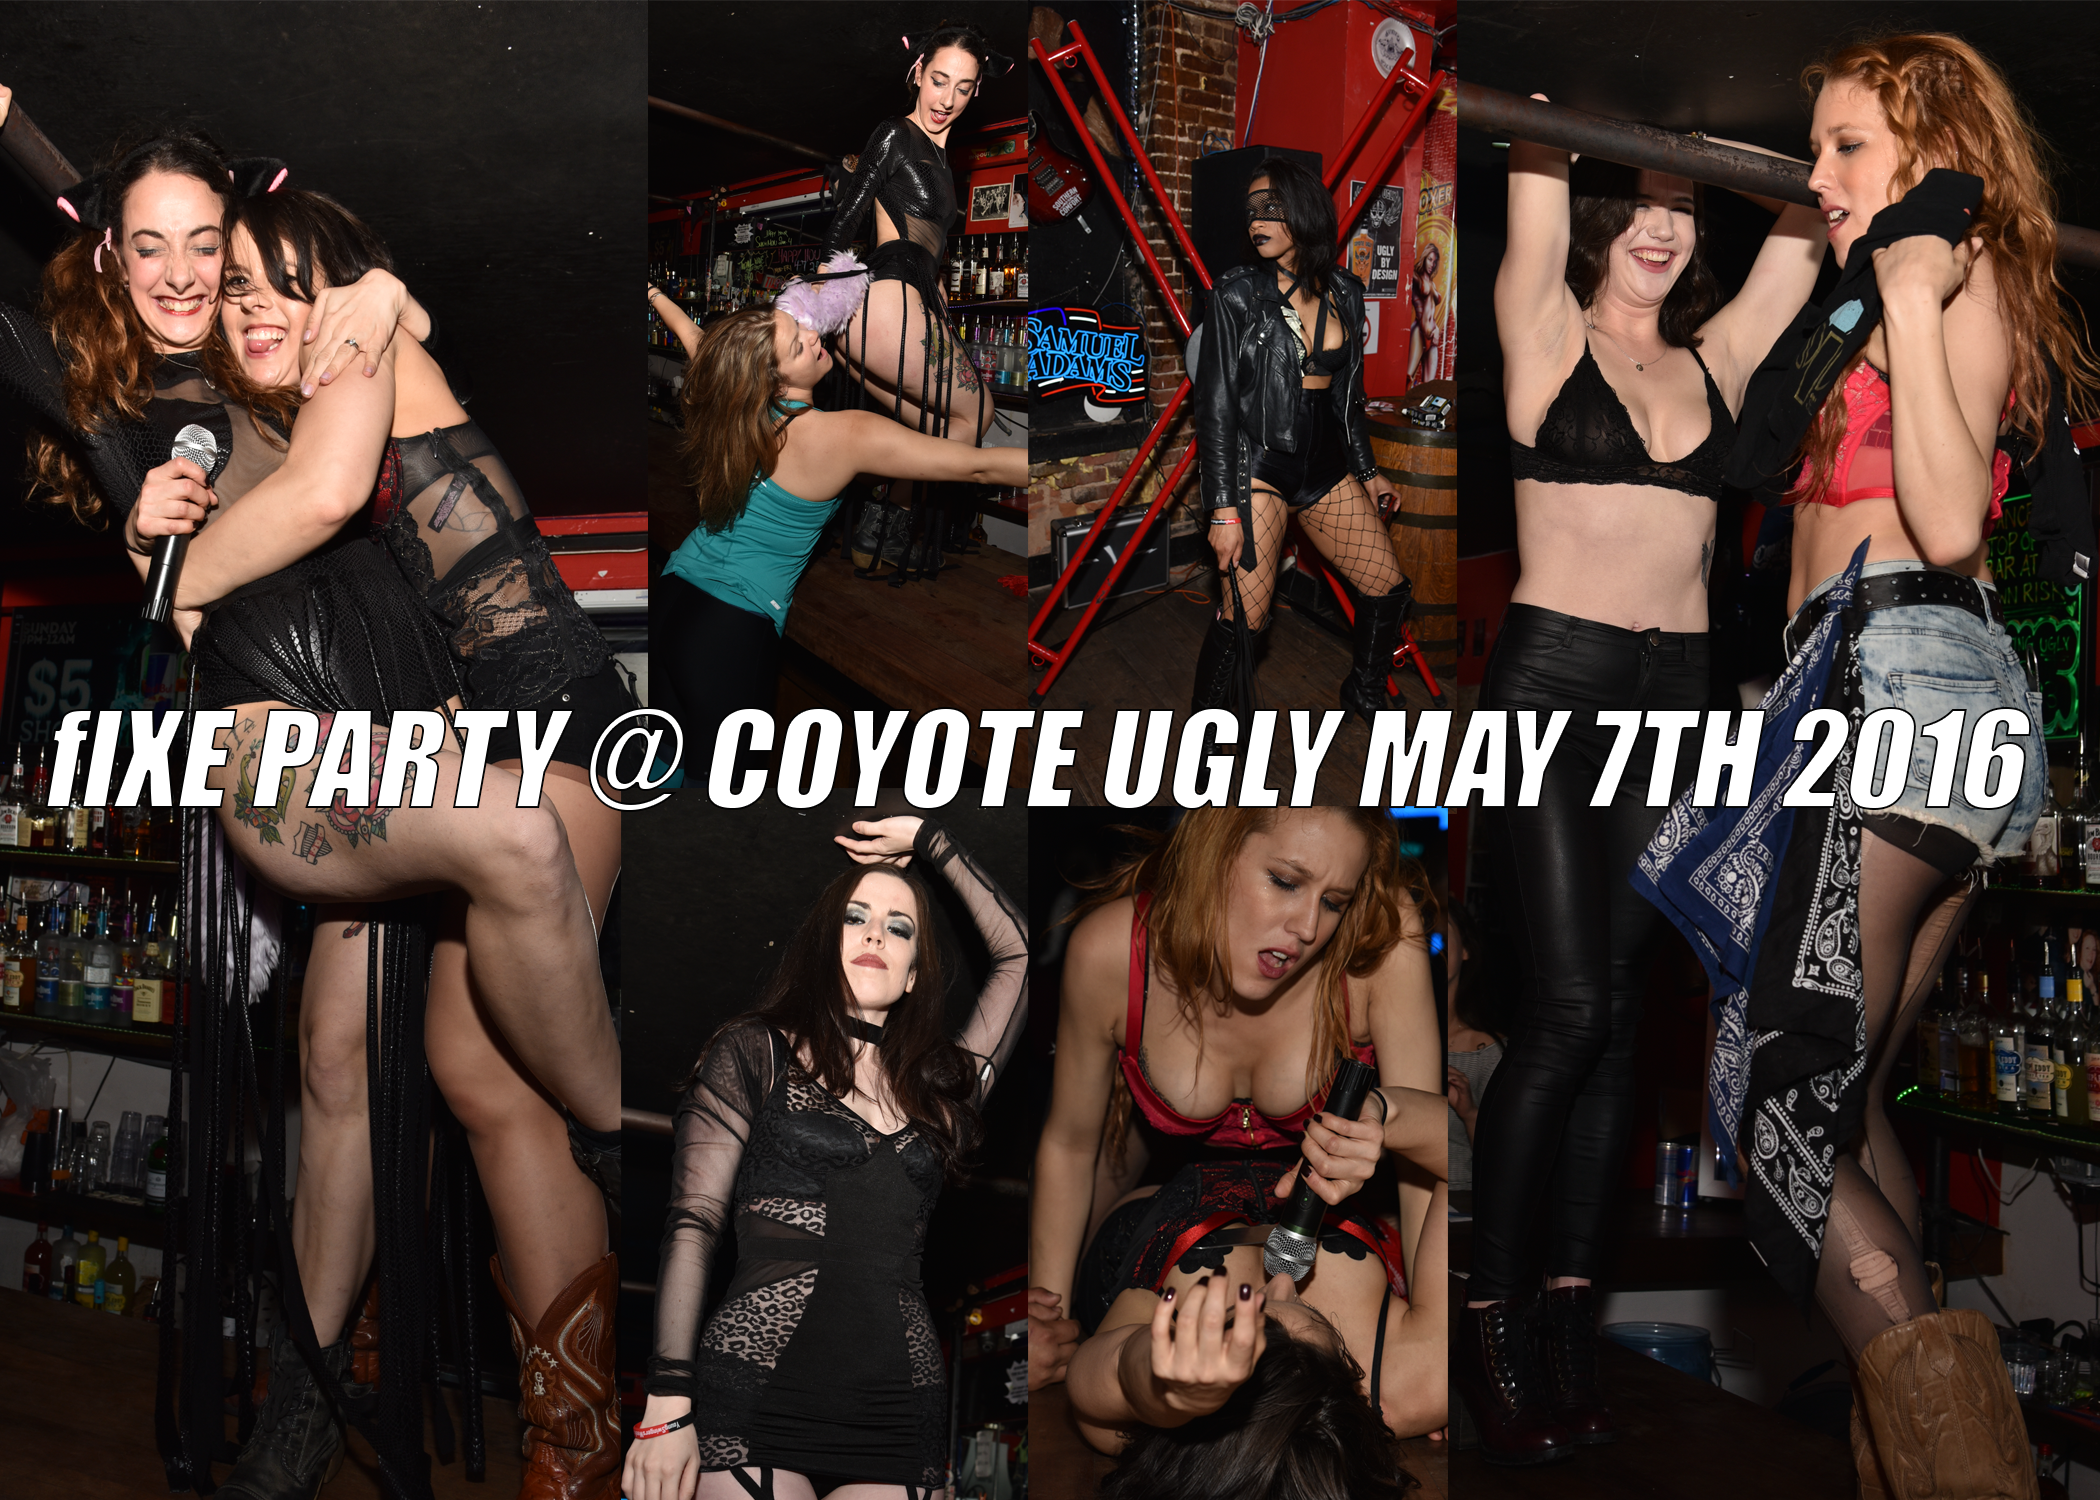 fIXE Party @ Coyote Ugly May 7th 2016 Photos